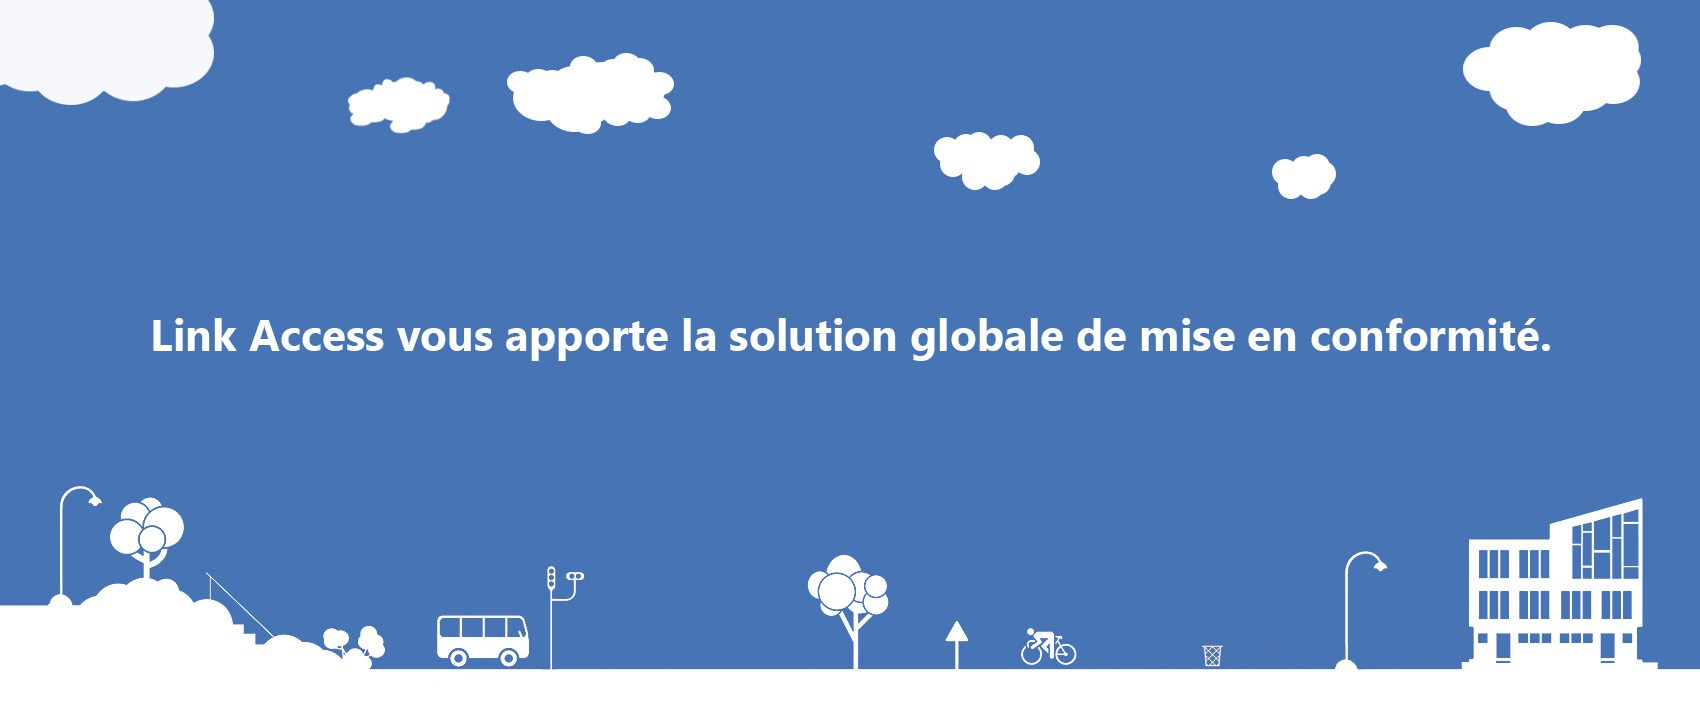 Link Access une solution globale